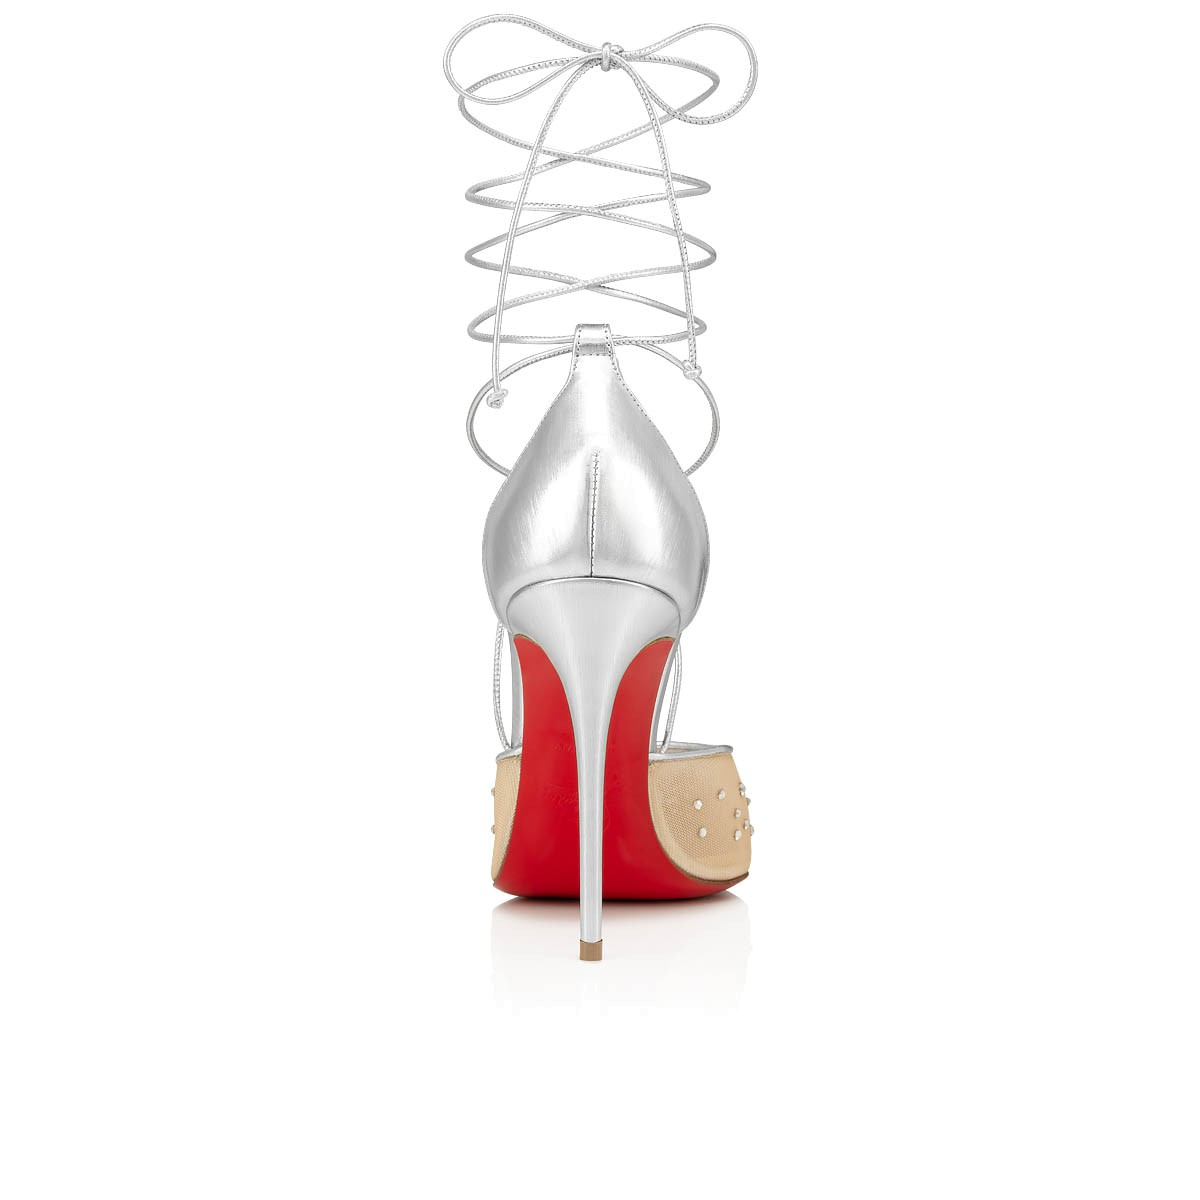 Shoes - Maia Labella - Christian Louboutin